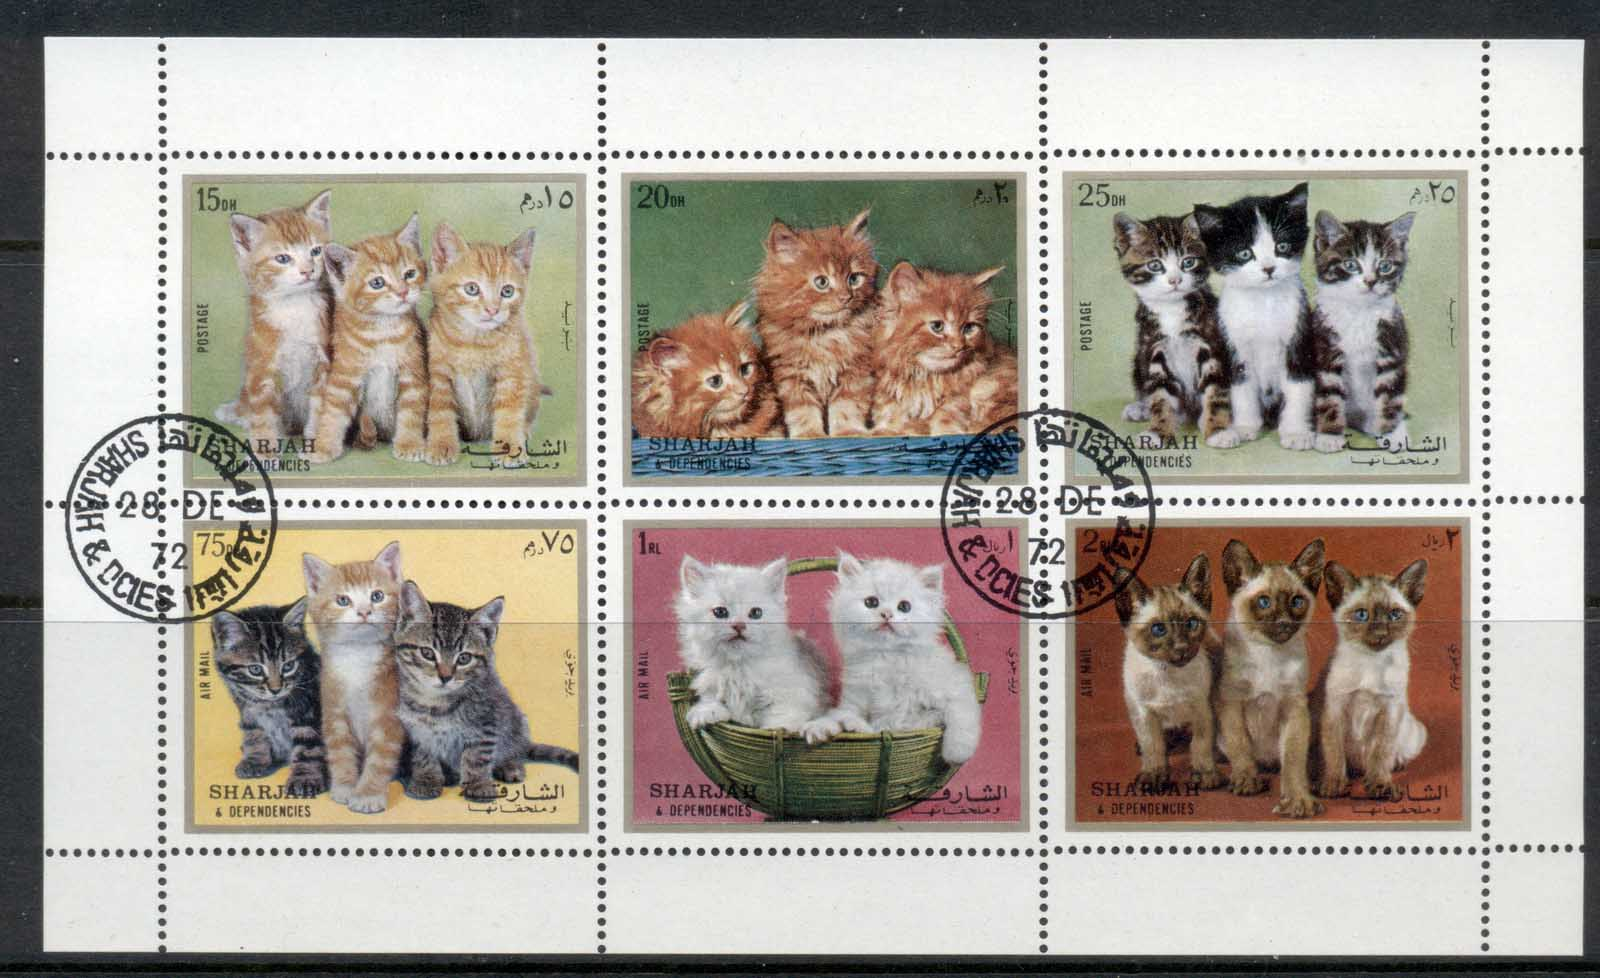 Sharjah 1972 Mi#1386-1391 Kittens, Cats MS CTO